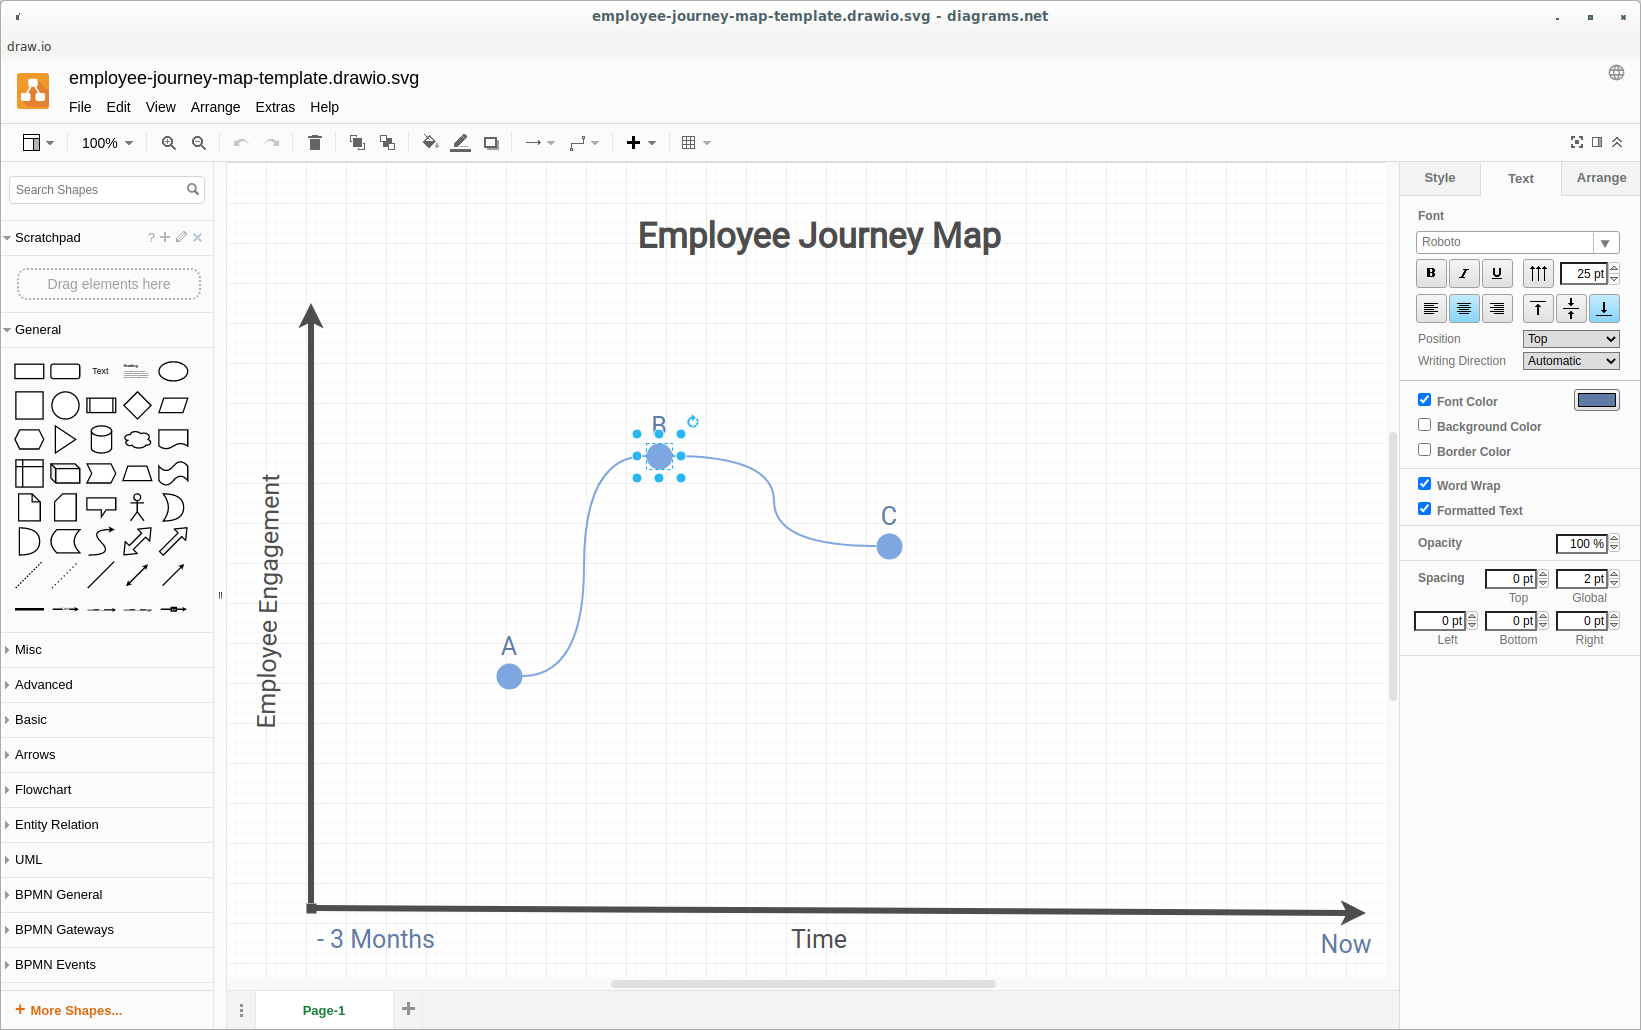 Draw.io/Diagrams.net Template File for an Employee Journey Map. Having a digital map is easier to create and to share in remote work setups. Moreover, you can easily add the map to the record.